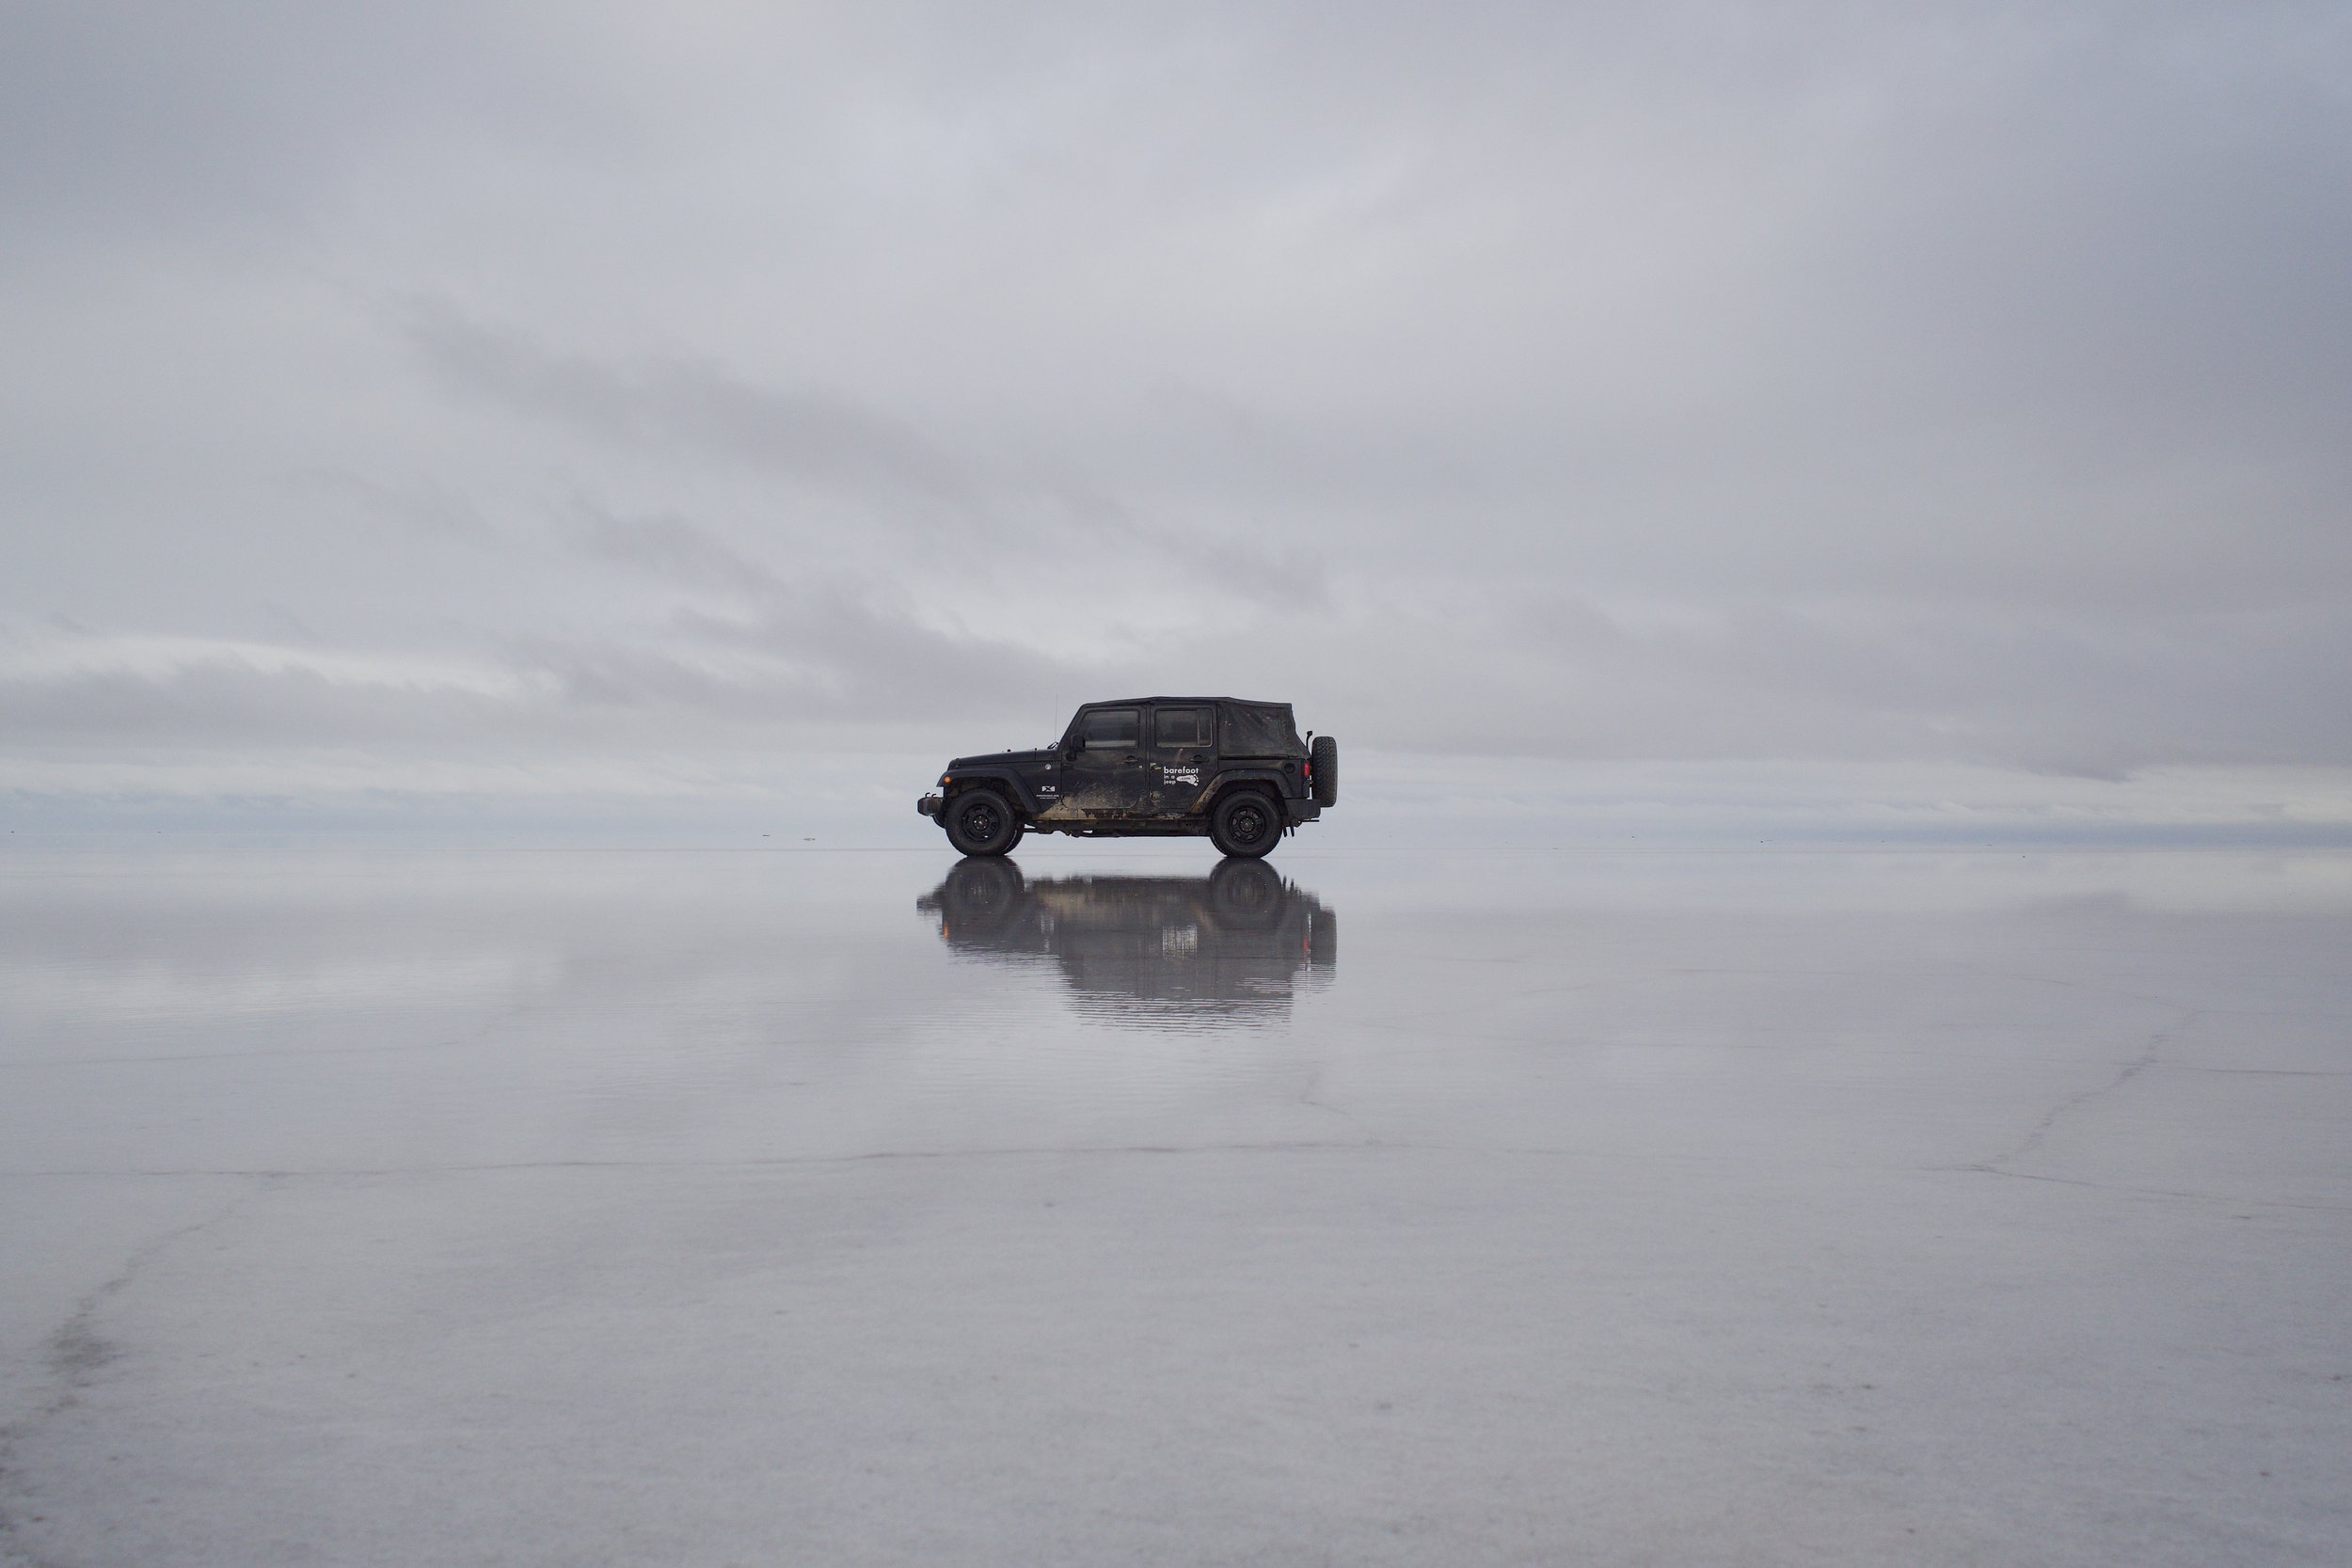 The Jeep in the largest salt flats on Earth: Uyuni in Bolivia.